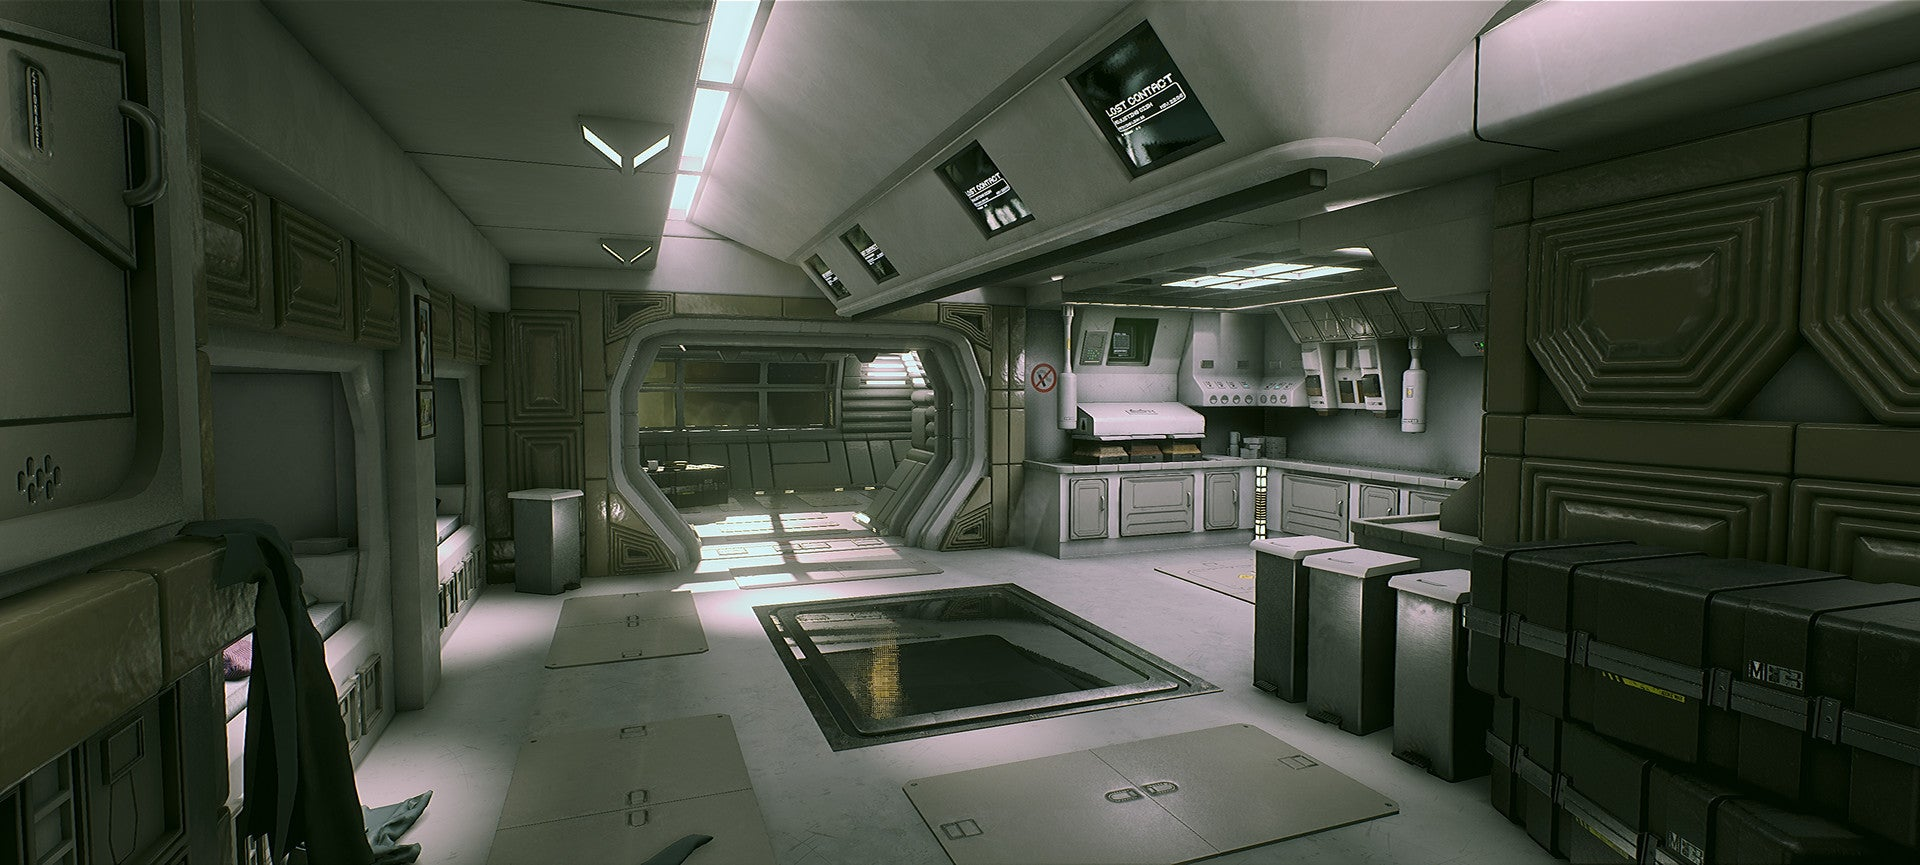 alien movie space station - photo #27